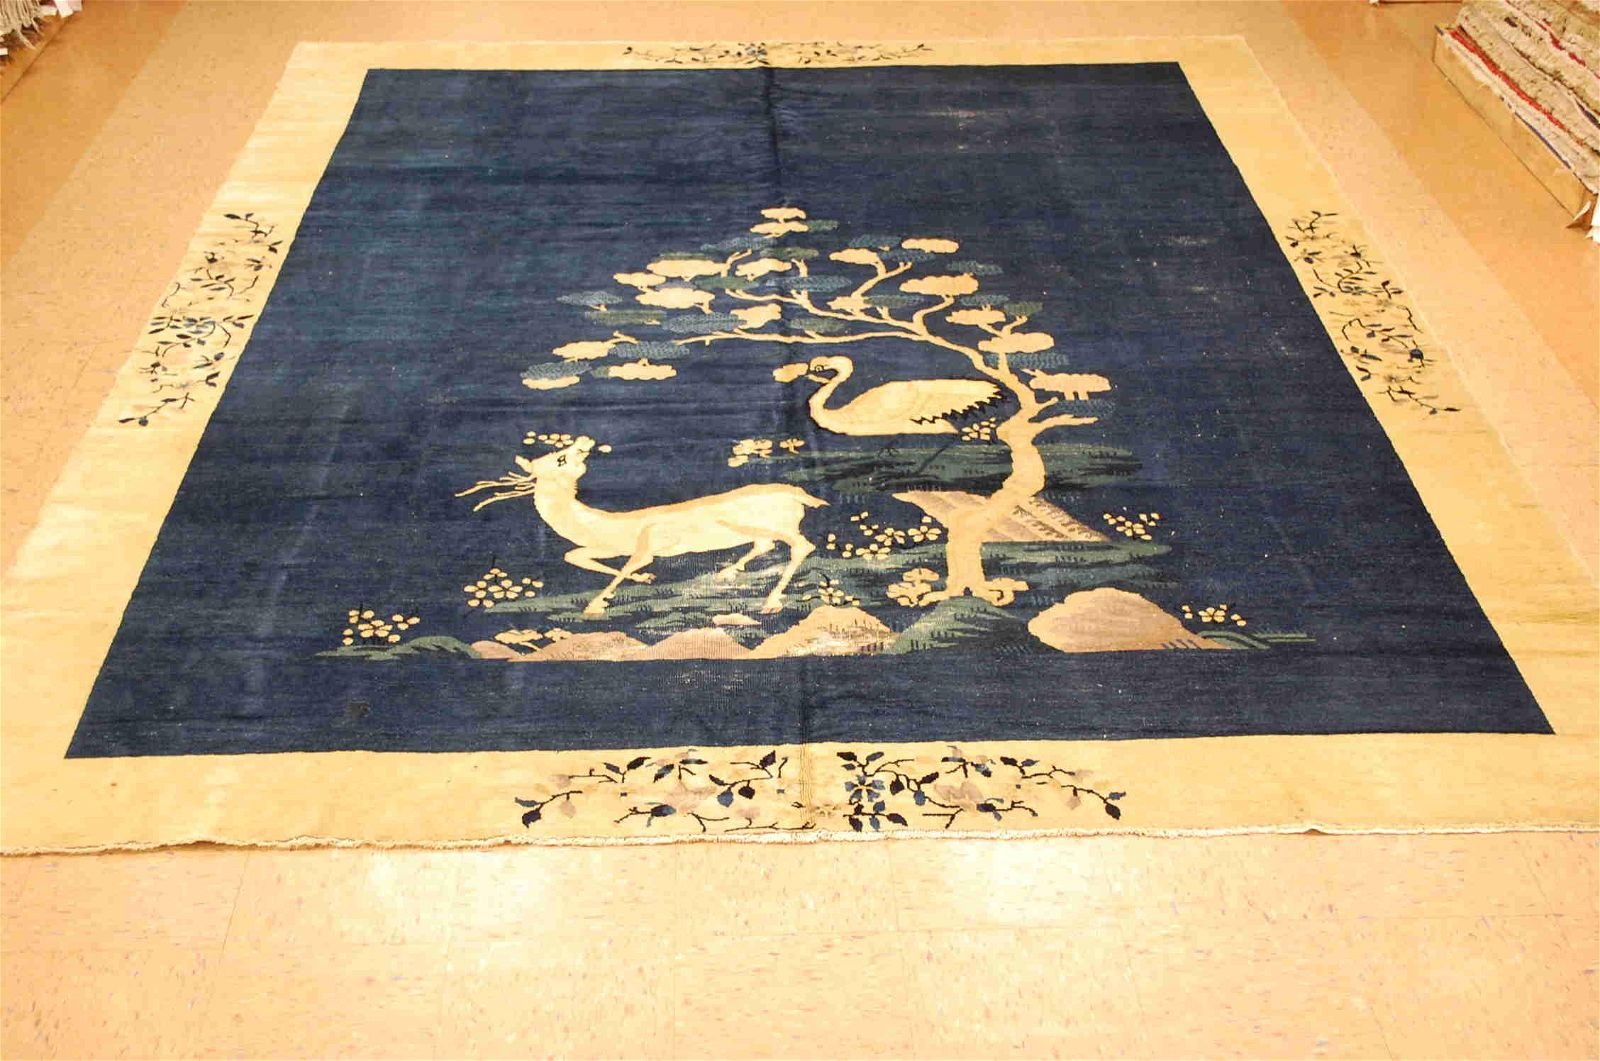 Pre 1900s ANTIQUE IMPORTANT CHINESE PICTORAL RUG 9x11.6